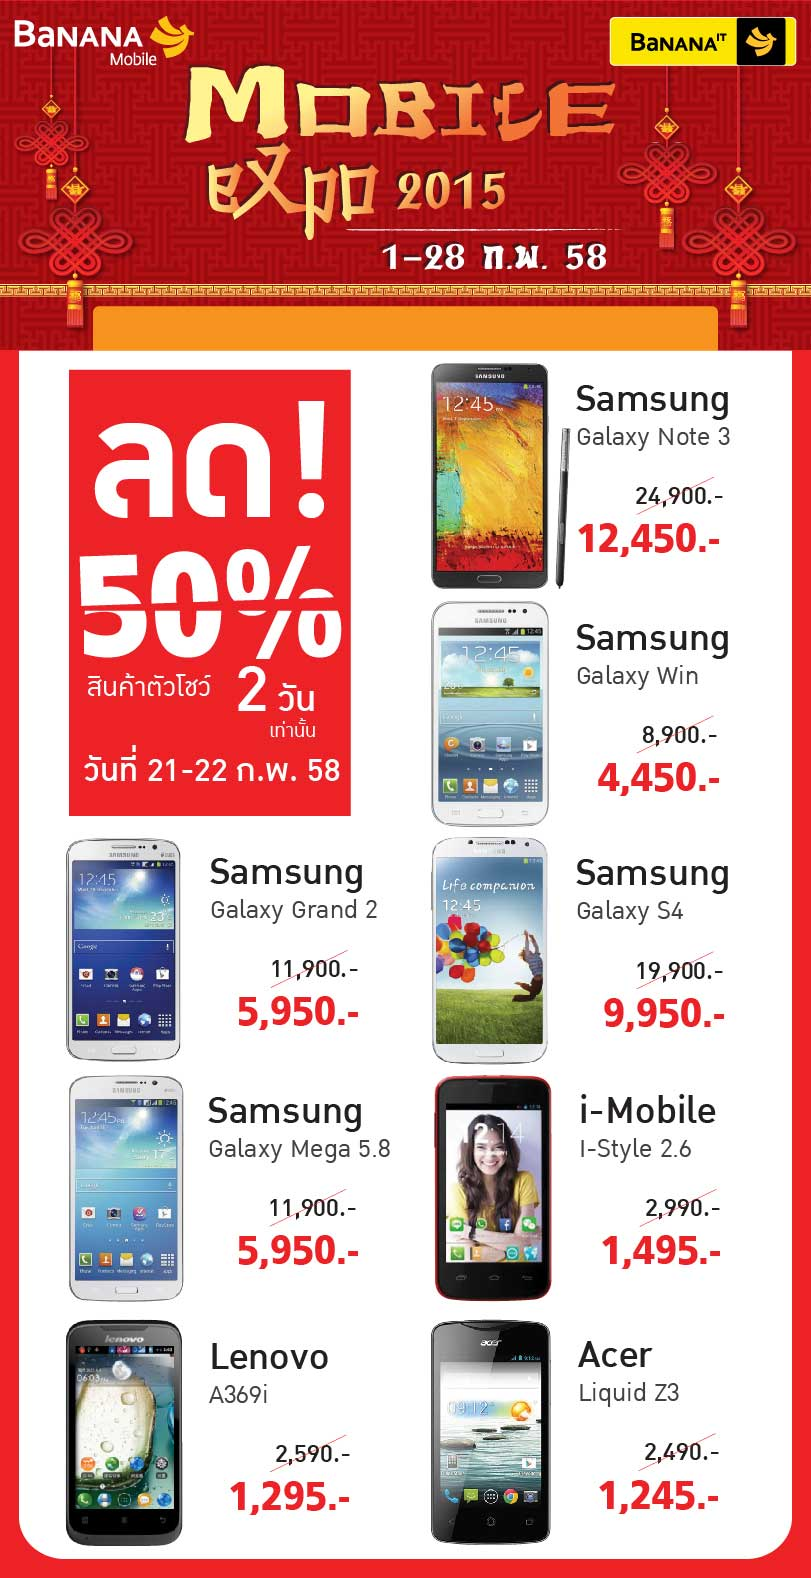 Benner Promotion Mobile Expo 2015_discount smartphone & tablet copy